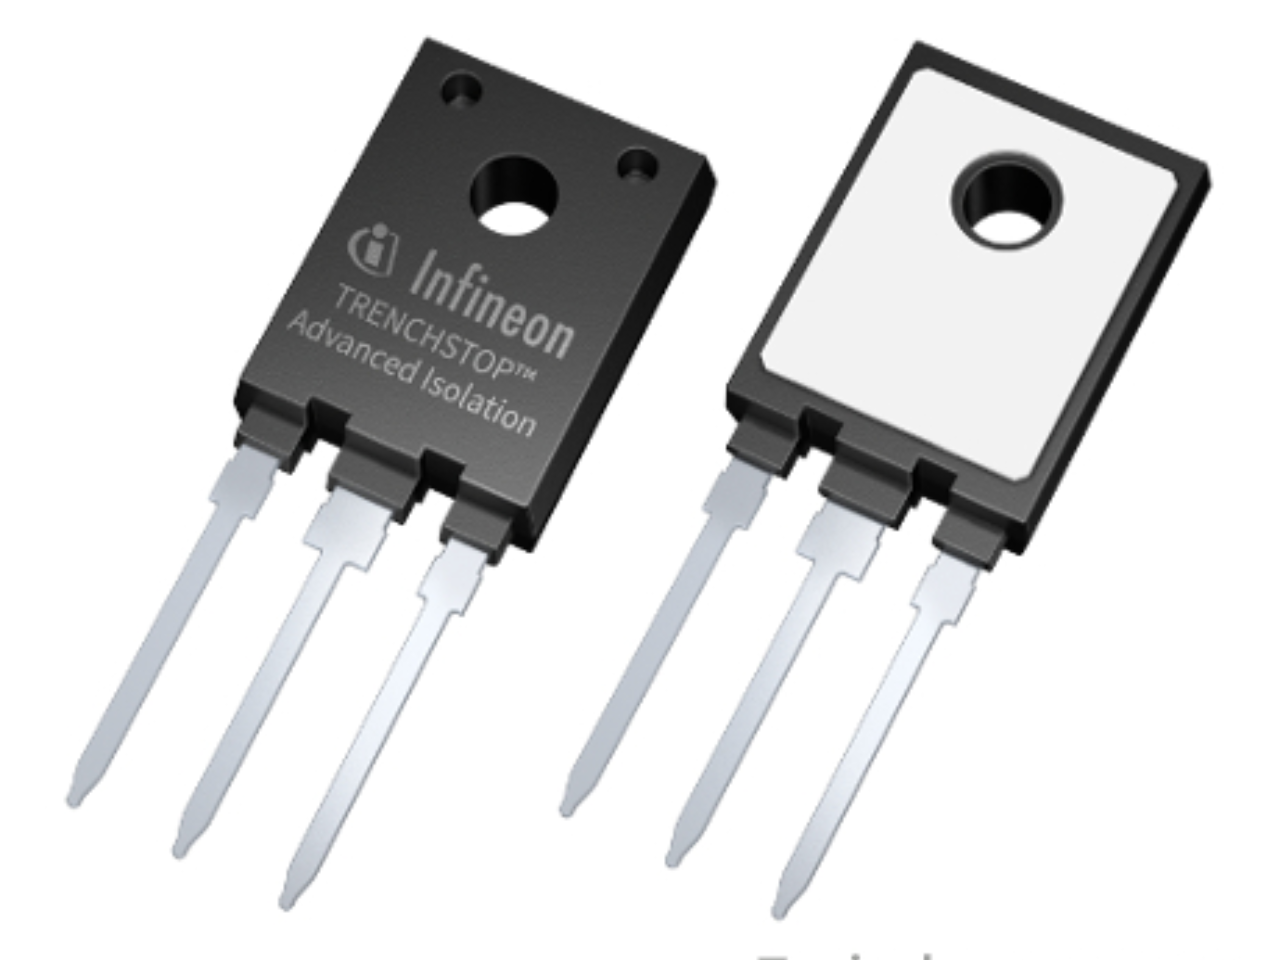 Discrete Igbt With Anti Parallel Diode Infineon Technologies Sic Schottky Diodes Vs Silicon Rectifiers Eeweb Power 35 Lower Thermal Resistance R Thj H Of Advance Isolation Material Compared To High Grade Iso Foil Enables Effective And Reliable